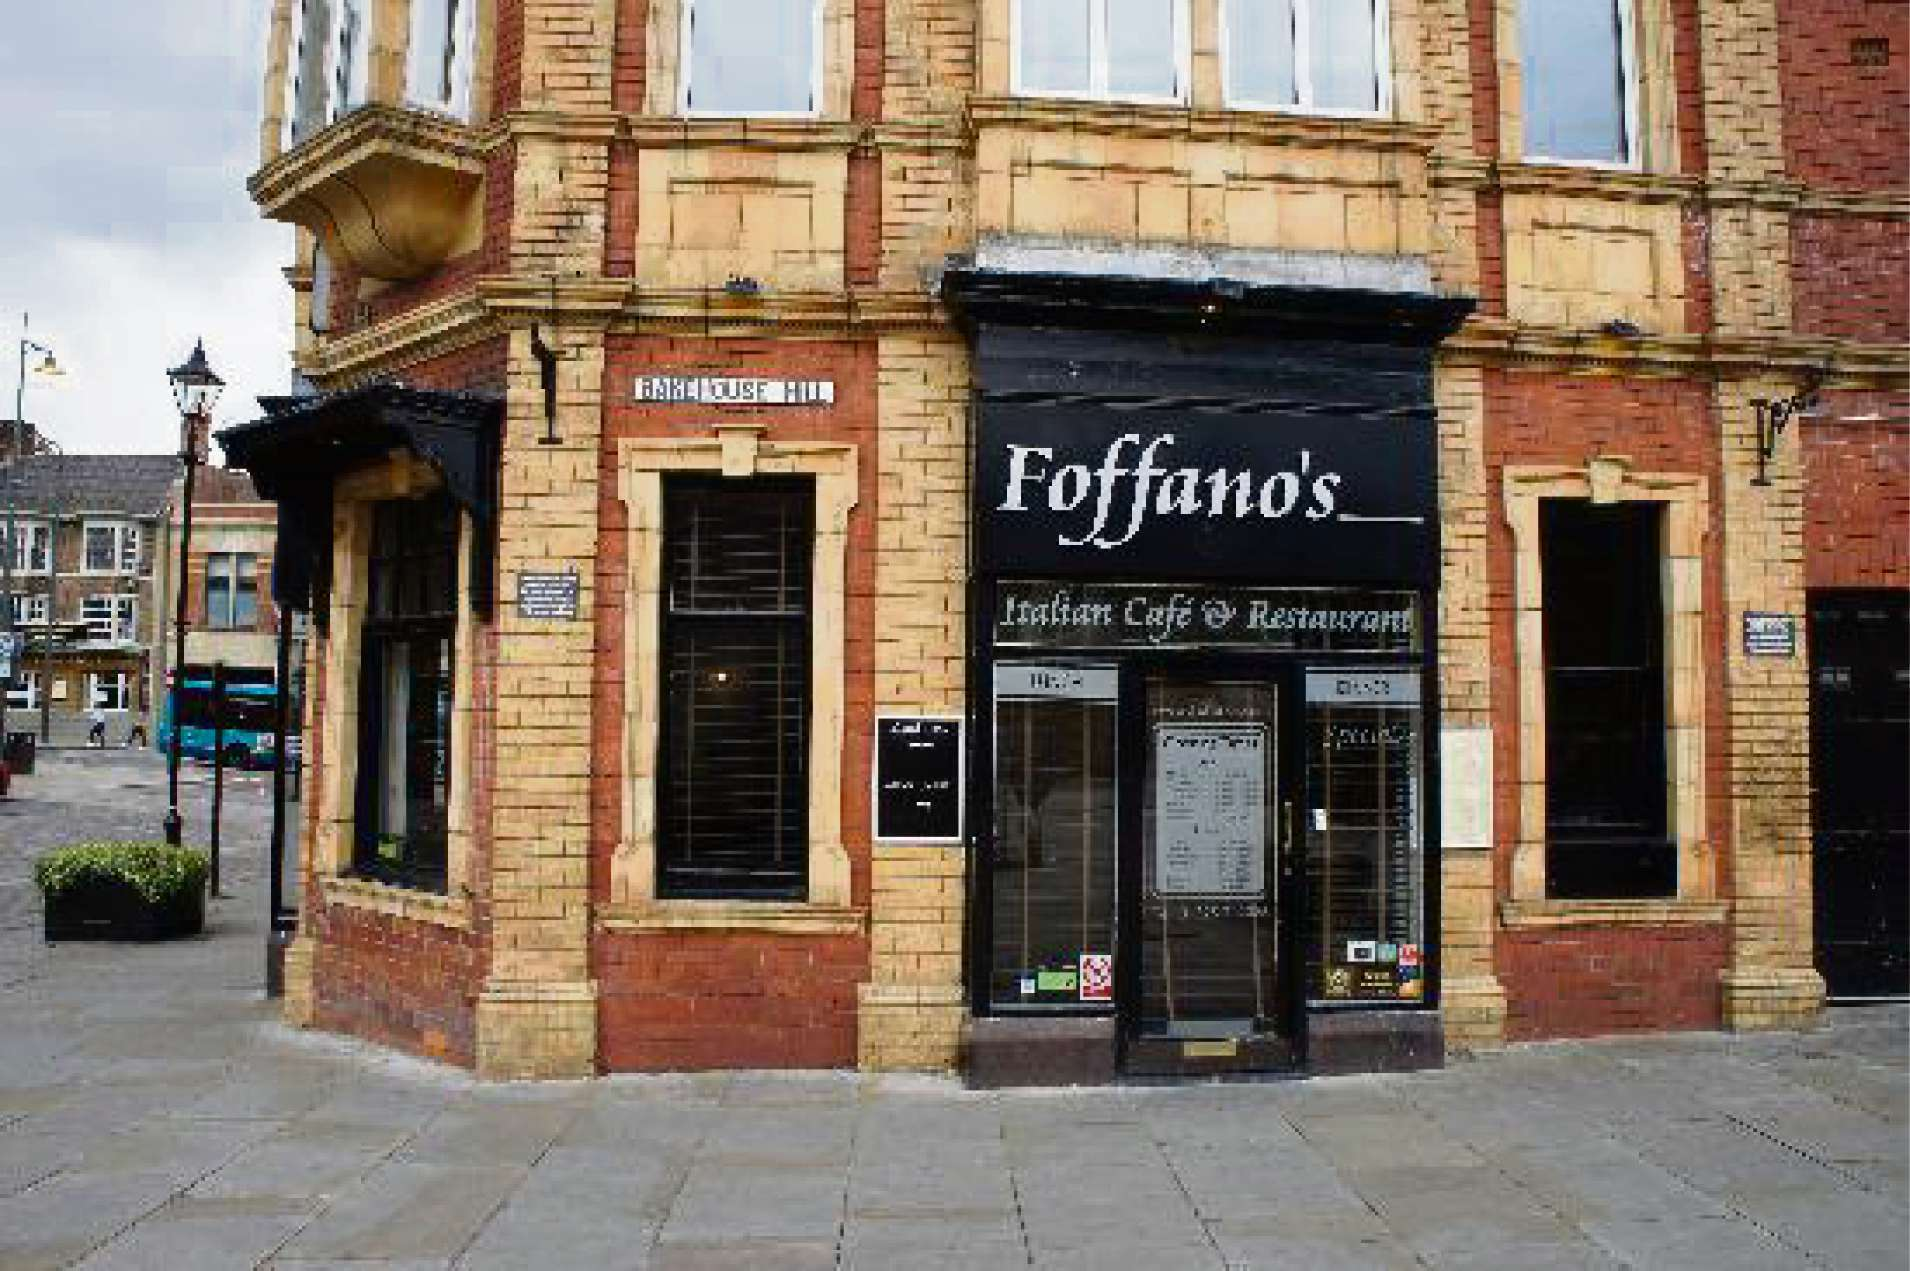 The team behind Foffano's restaurant are set to open an Italian deli